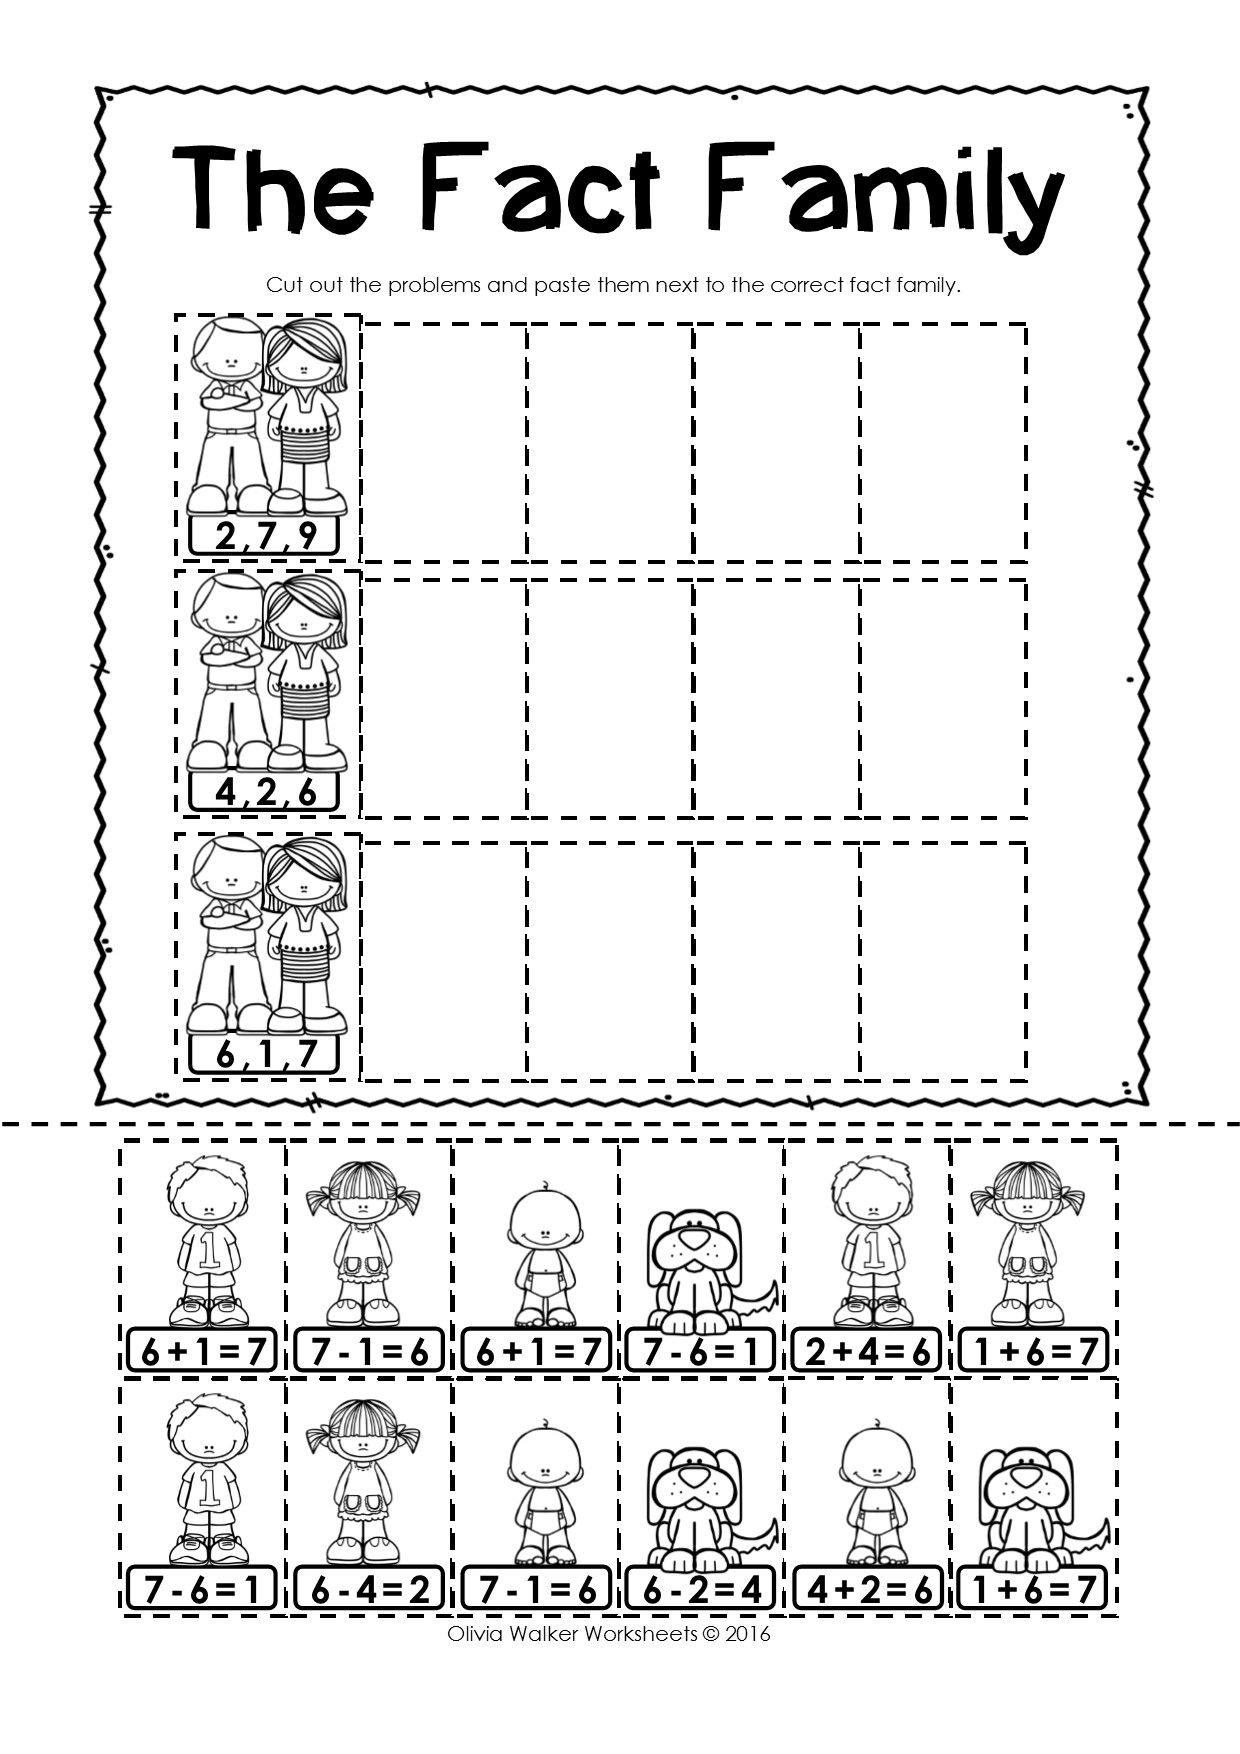 small resolution of Pin on My Worksheets and Clip Art